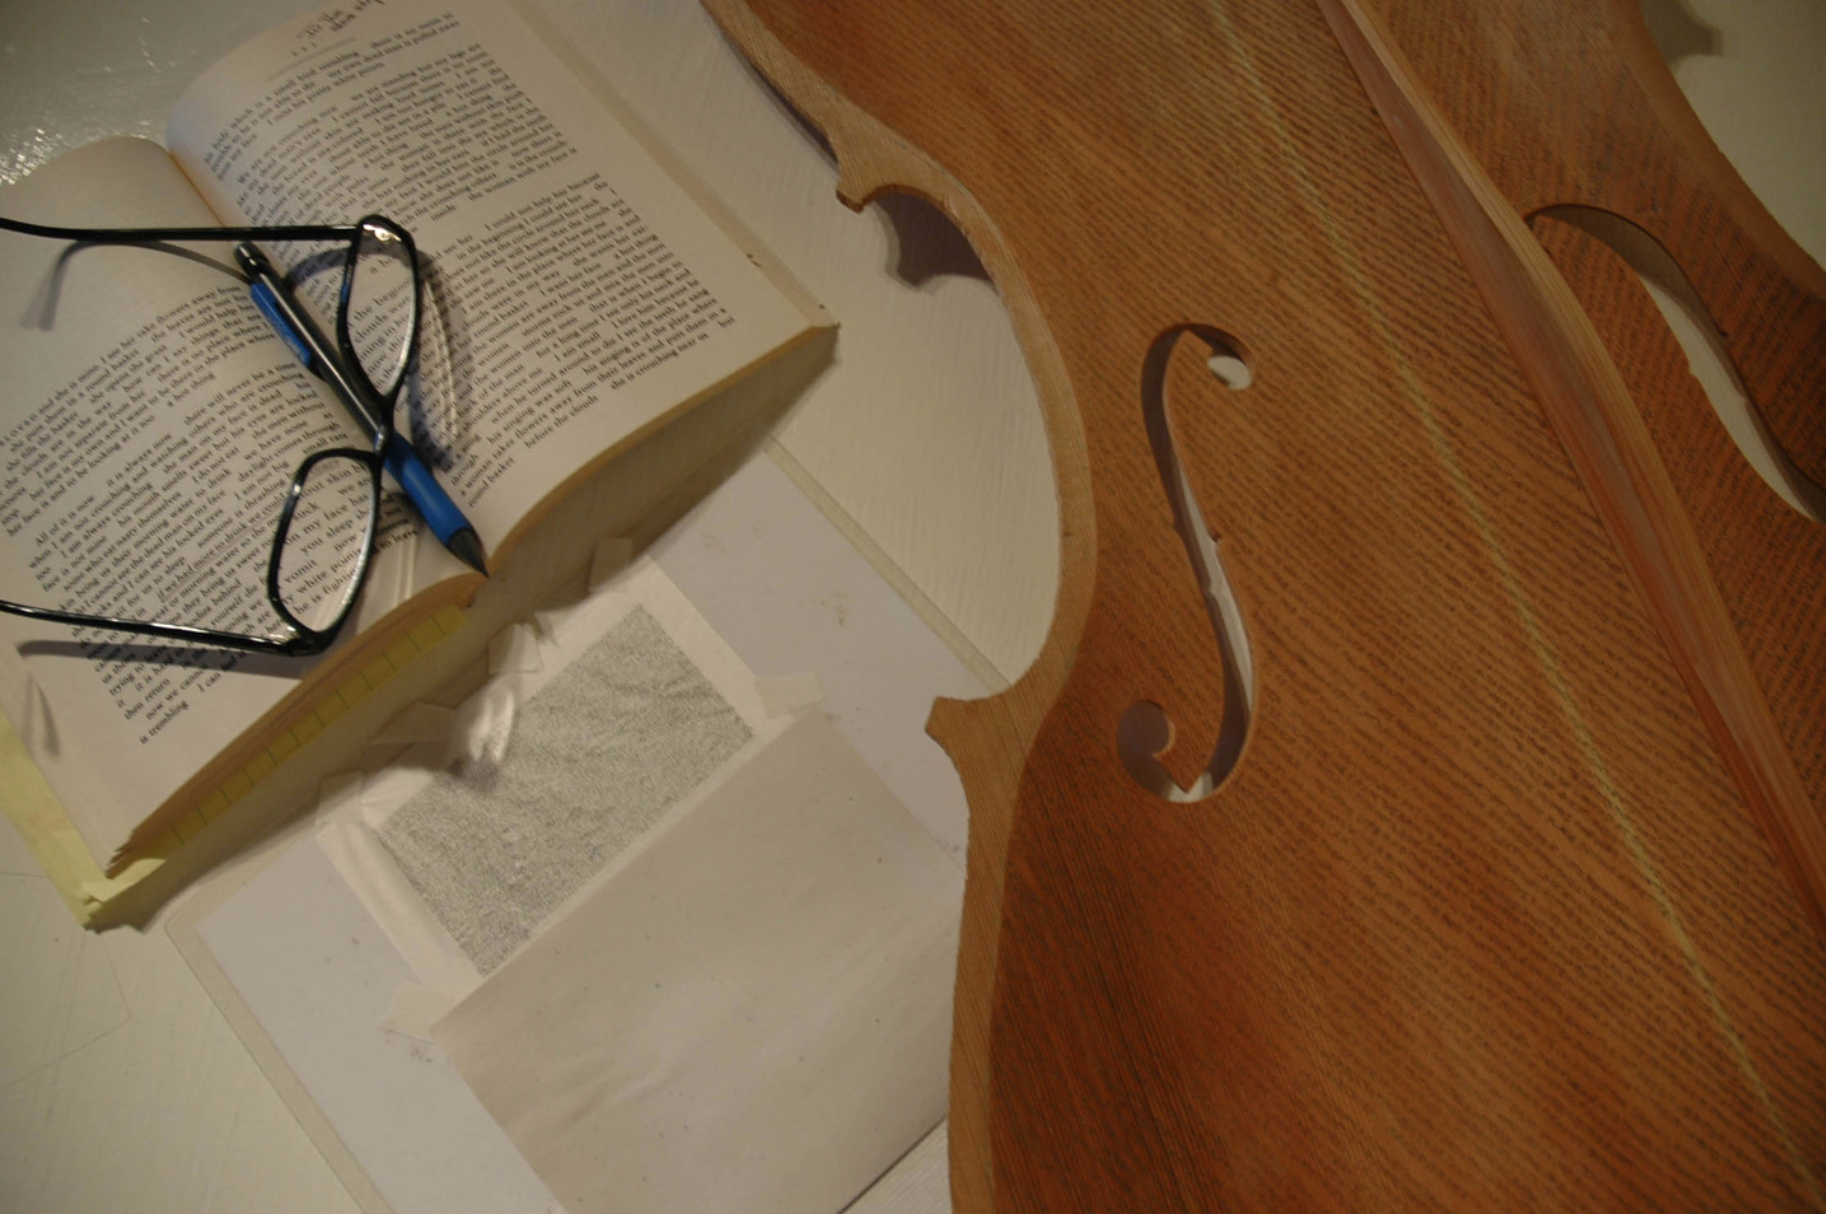 Margeaux-Klein-inscribing-the-novel-Beloved-on-cello.png